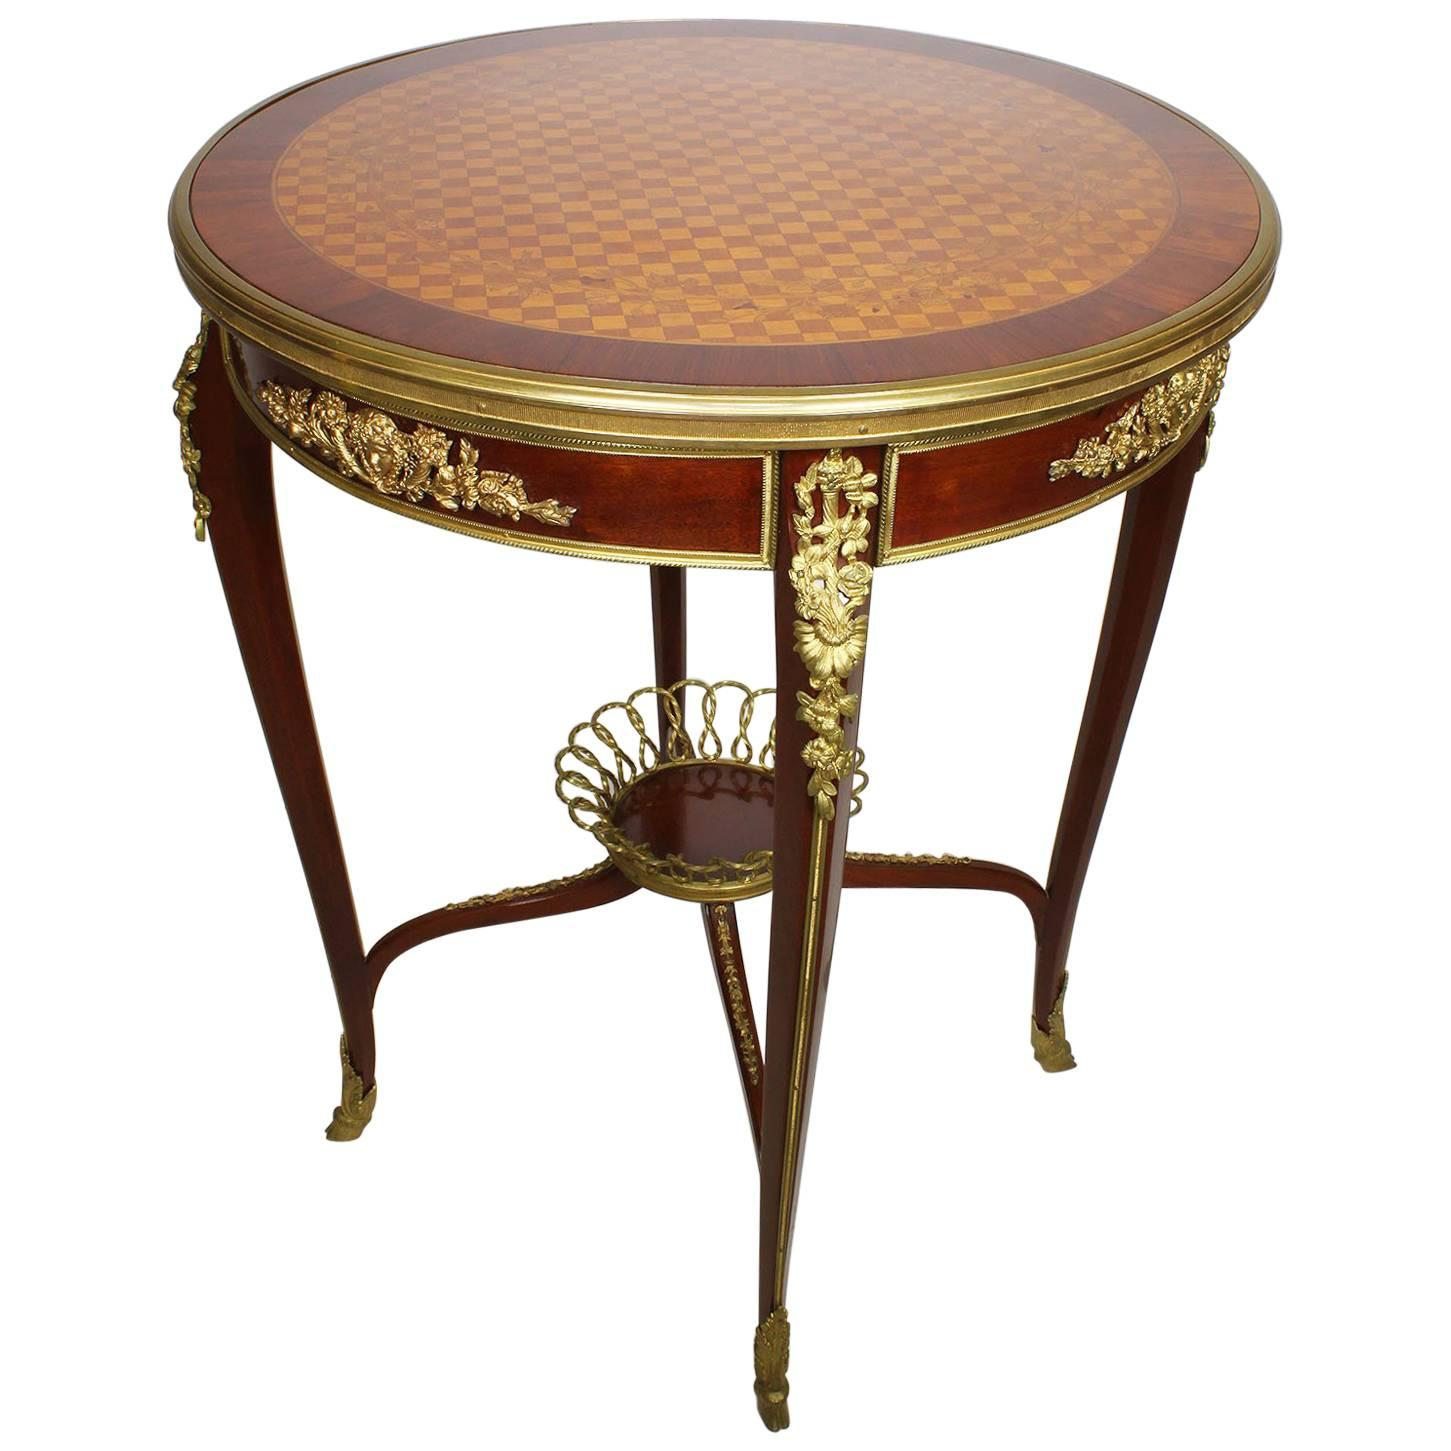 French Louis XV Style Ormolu-Mounted and Marquetry Gueridon Side Table